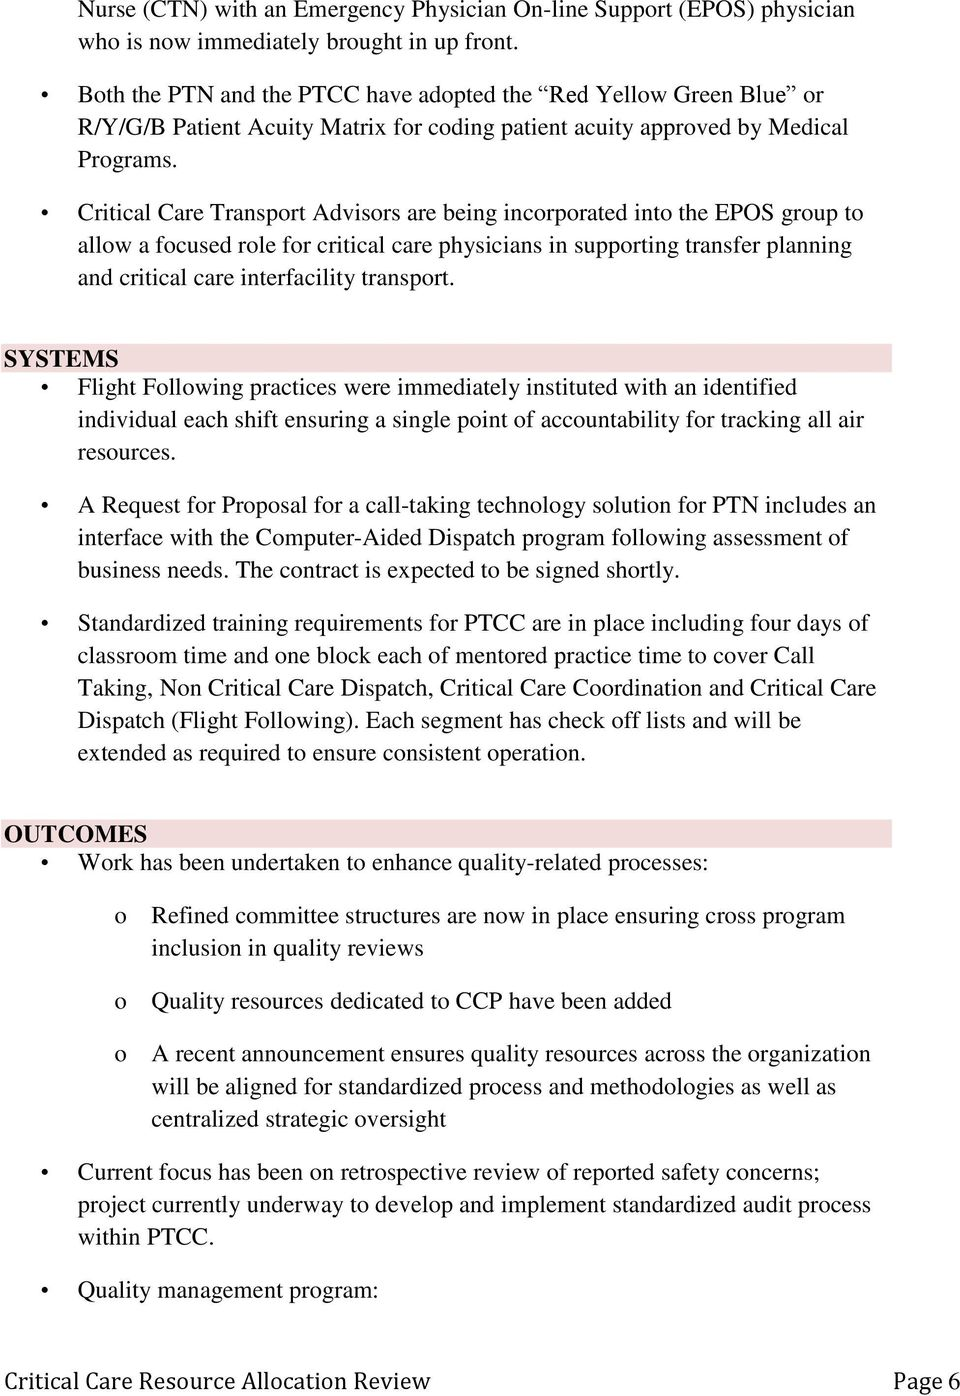 Critical Care Transport Advisors are being incorporated into the EPOS group to allow a focused role for critical care physicians in supporting transfer planning and critical care interfacility